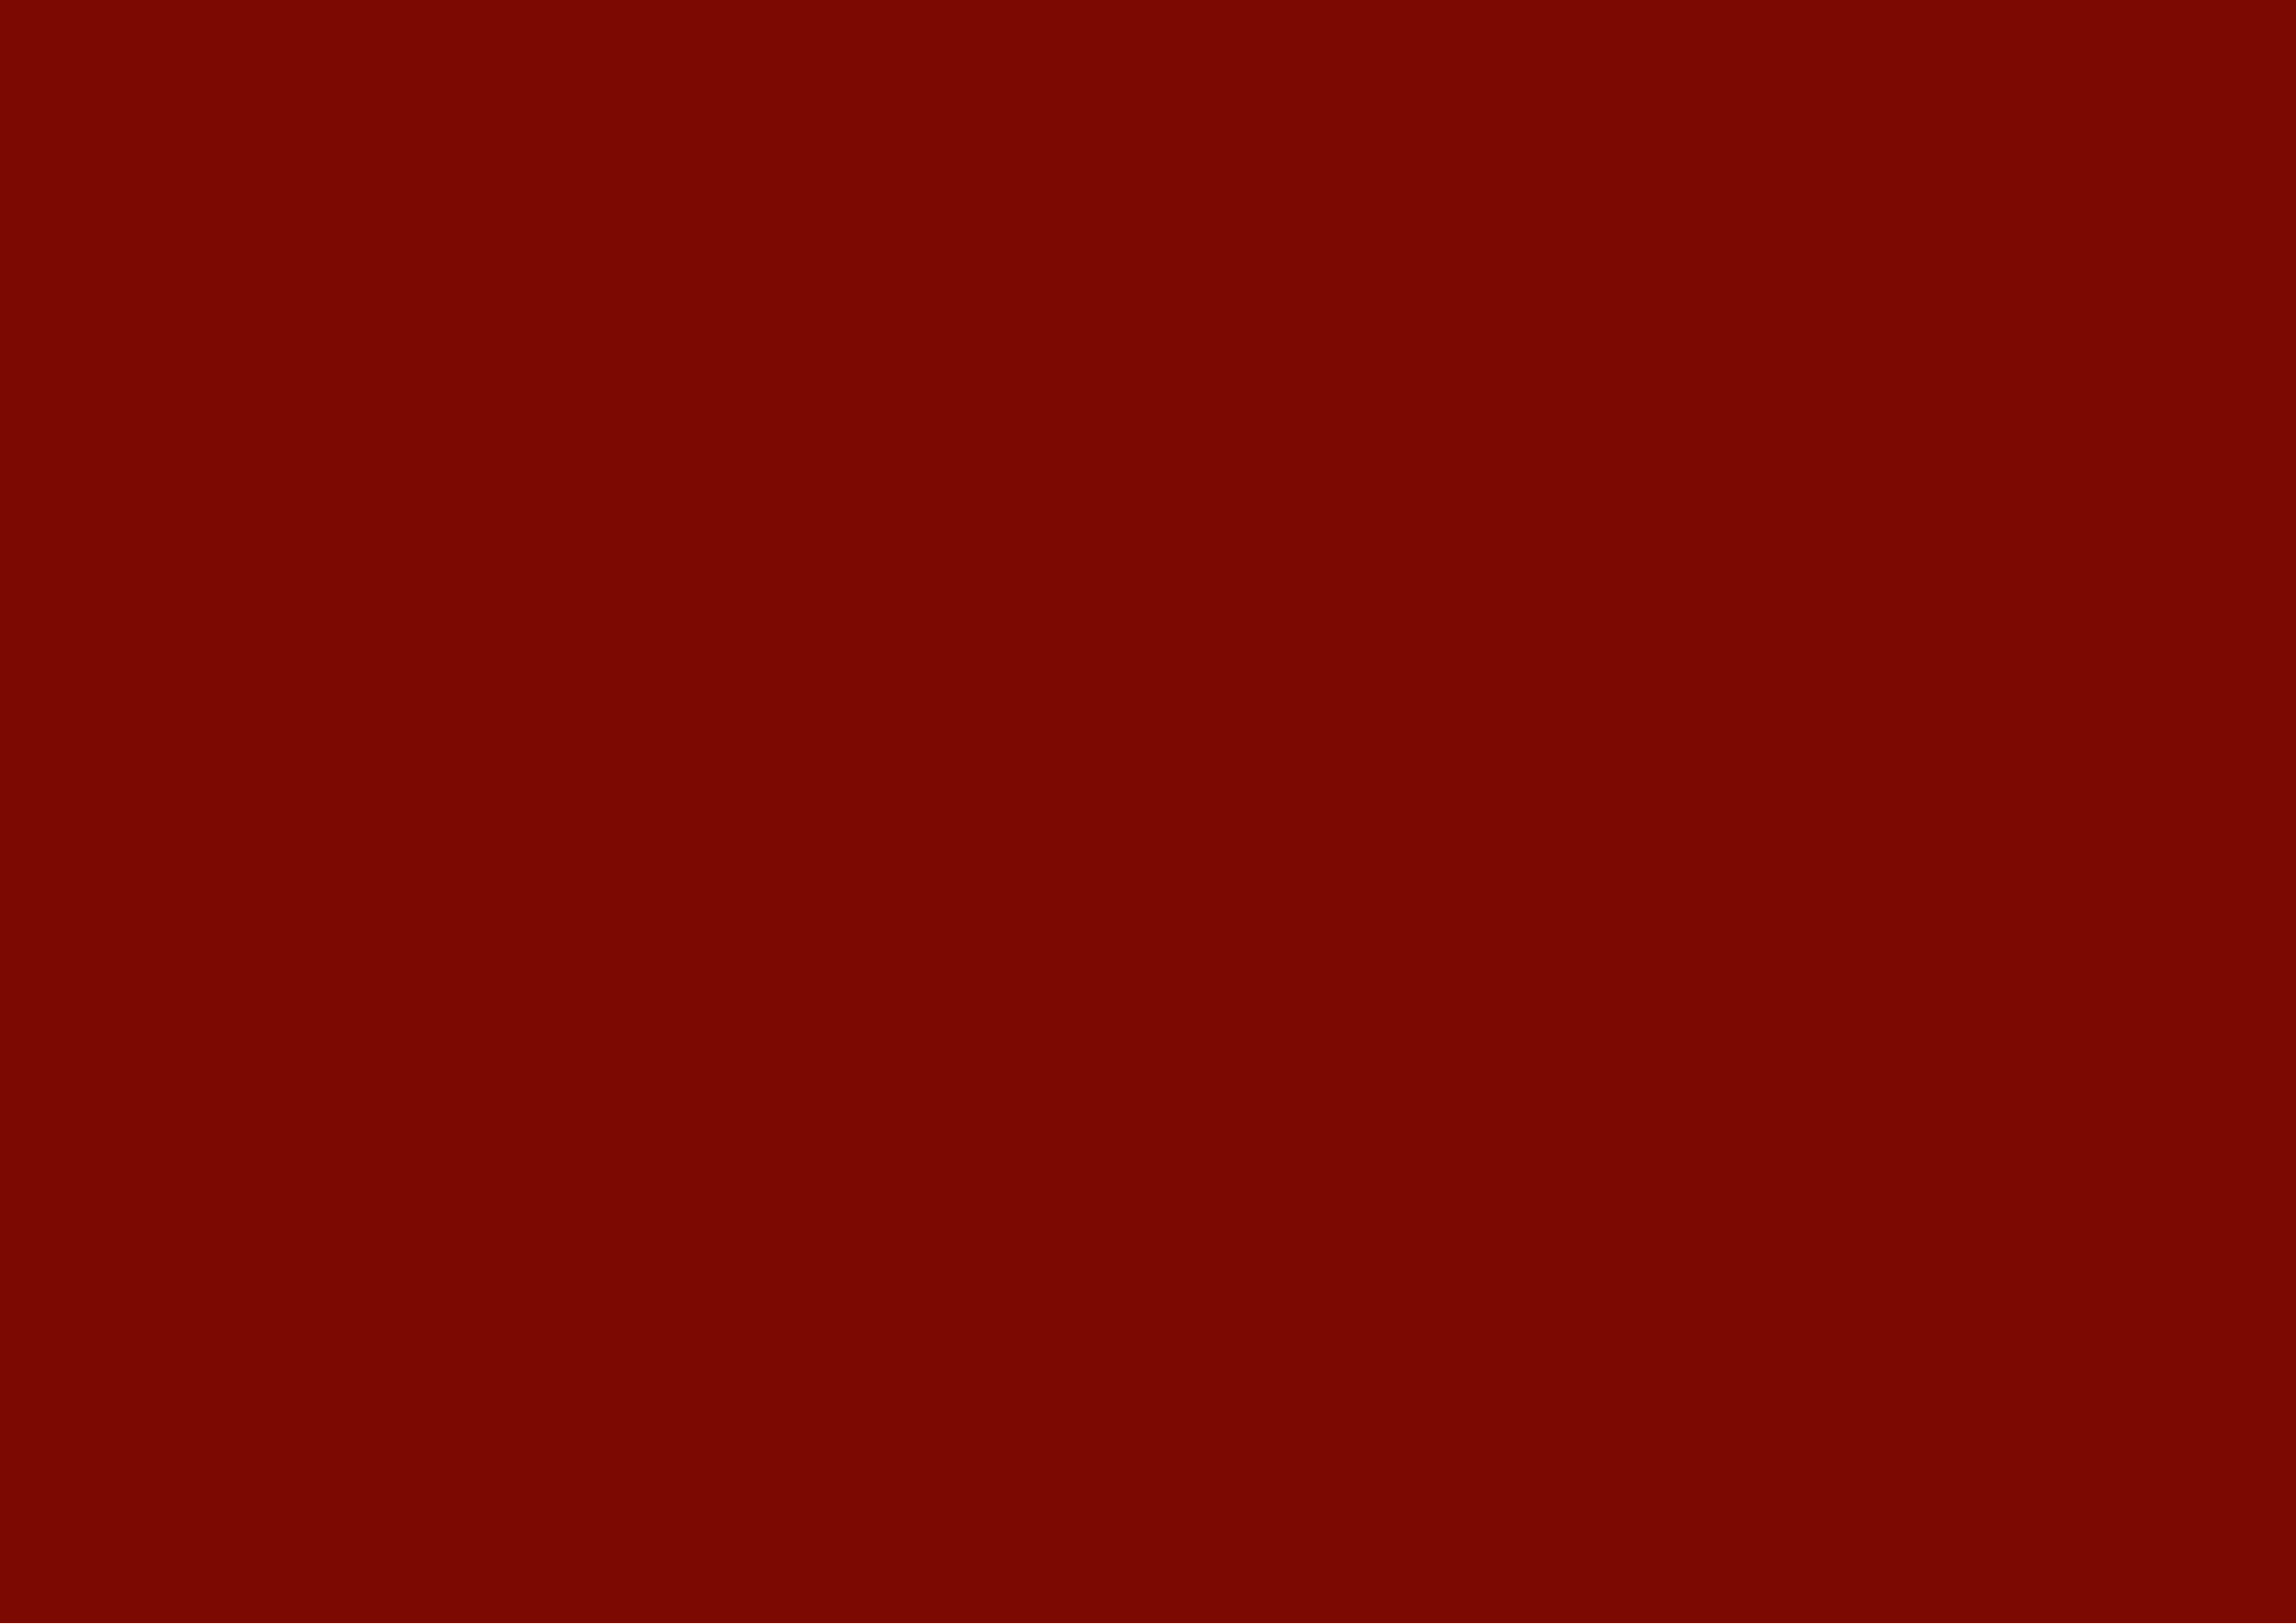 3508x2480 Barn Red Solid Color Background